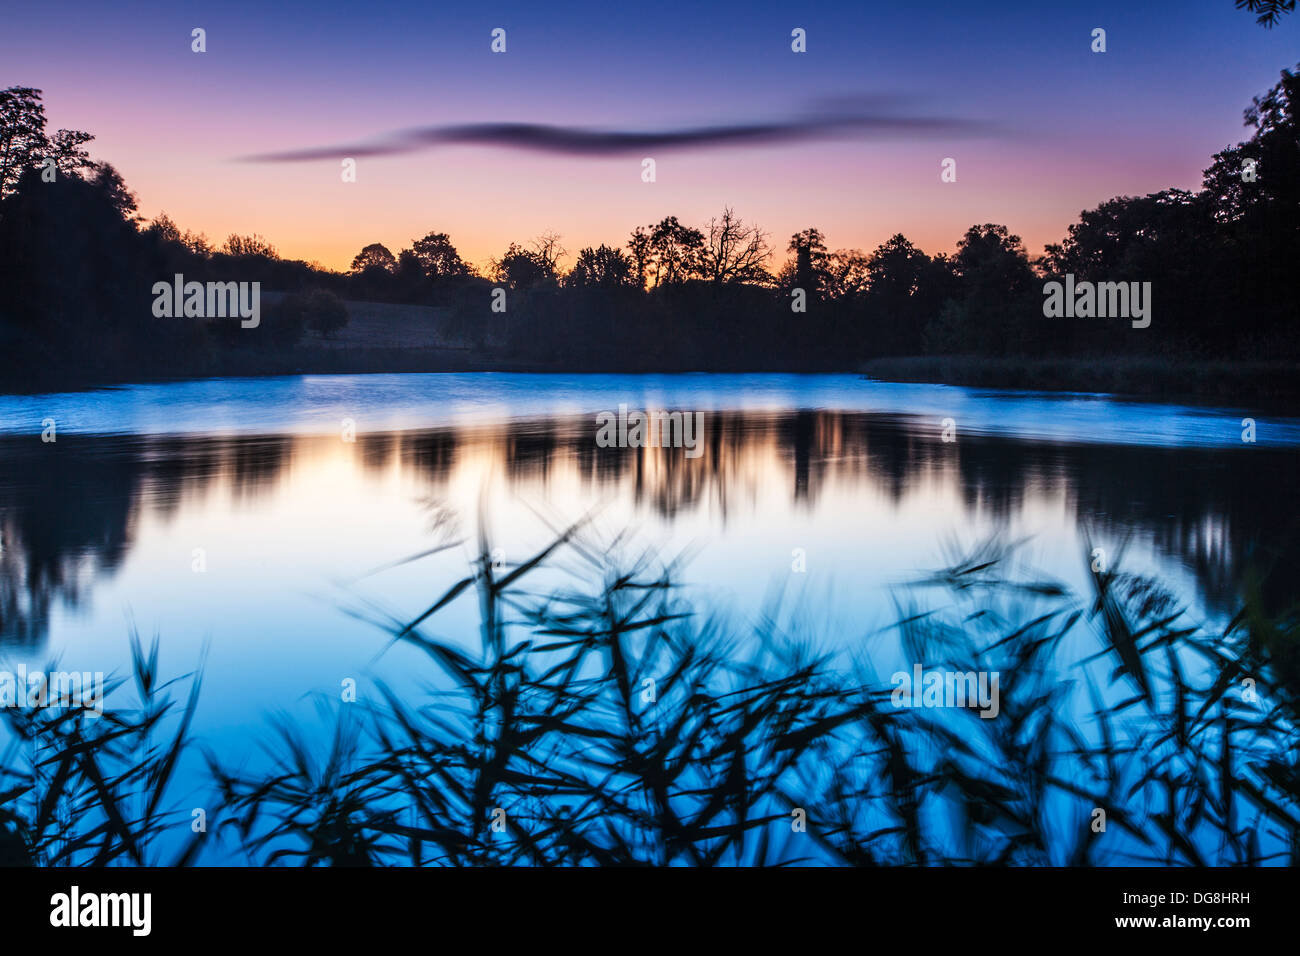 Twilight over the lake at Stanton Park in Swindon, Wiltshire, UK. - Stock Image